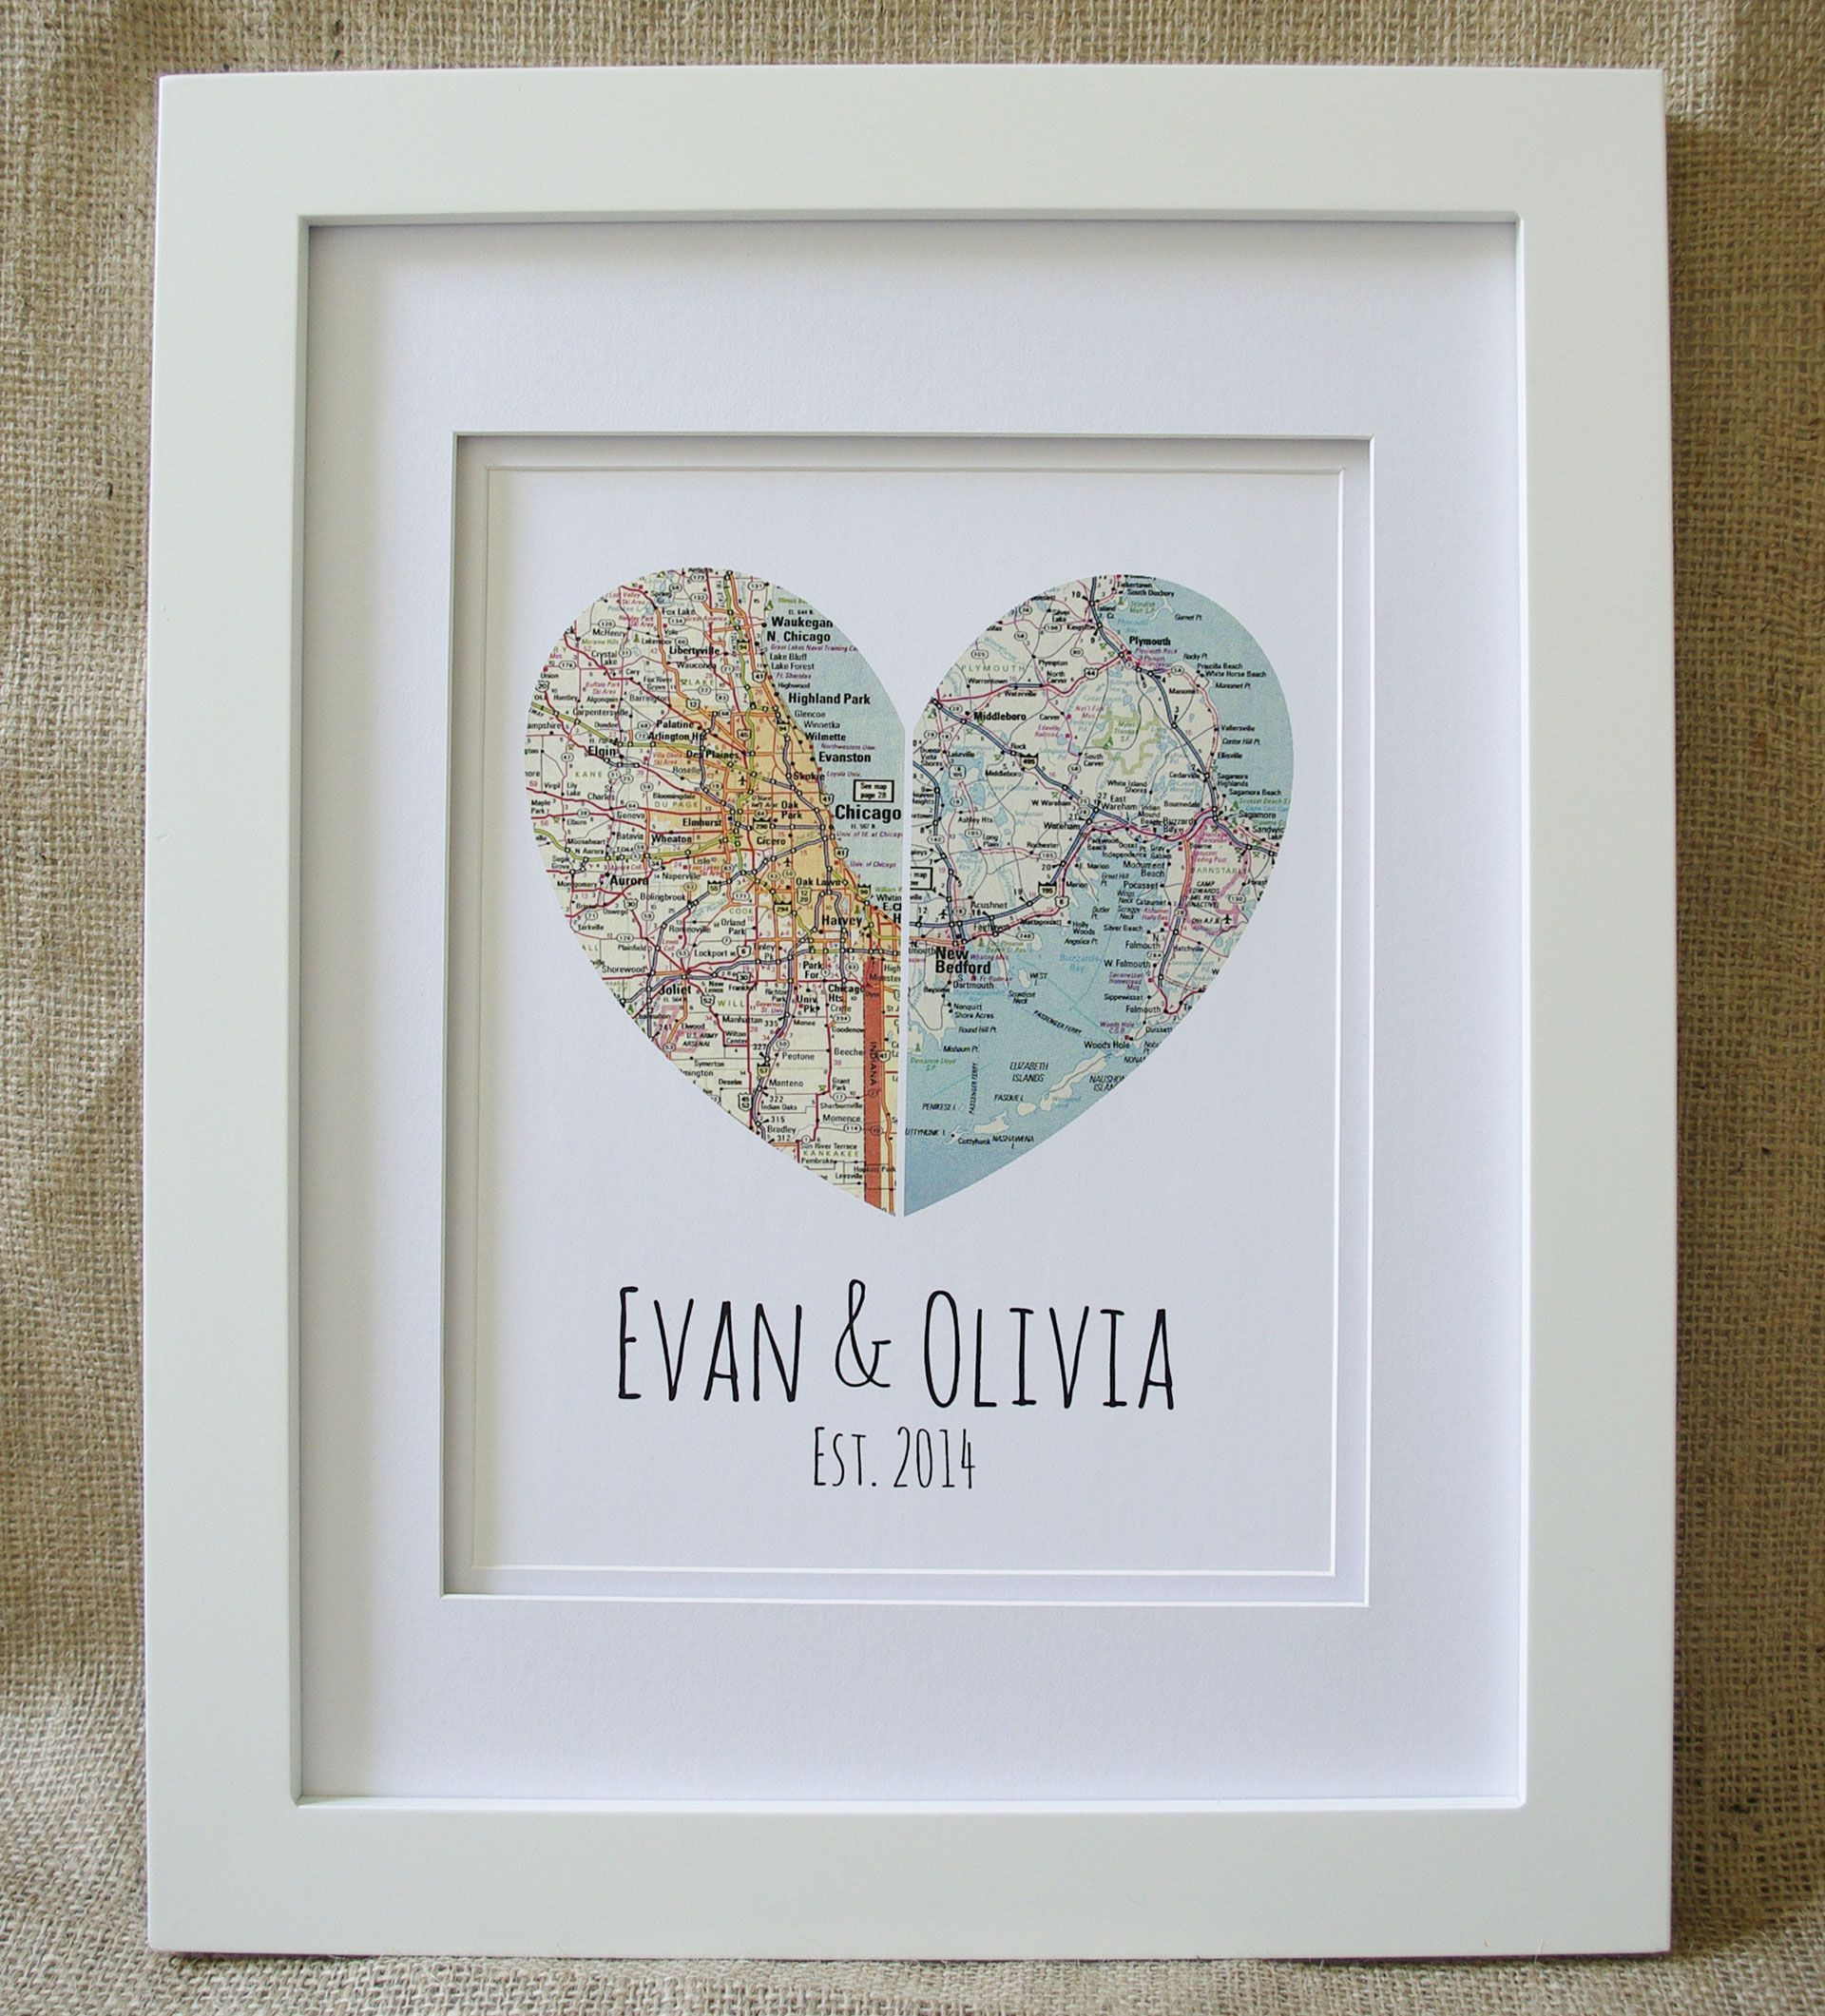 12 more personal wedding gifts   Cool Ideas   Pinterest   Gift ...